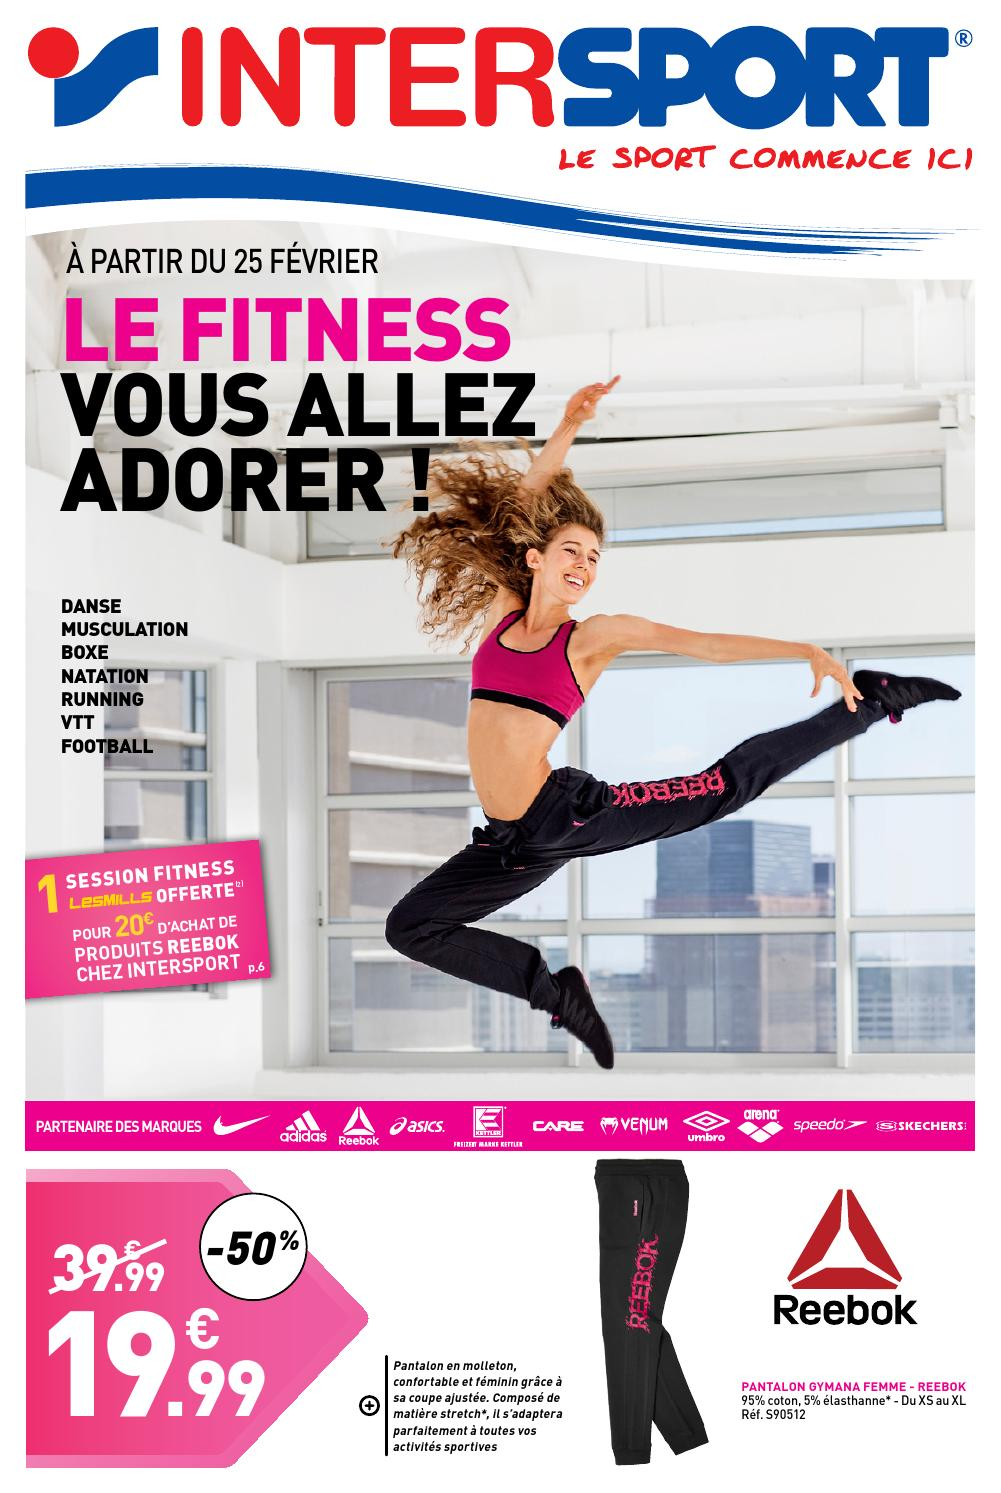 Intersport France Fitness By Adorer Aller Vous Issuu Le wRpngqIFWI